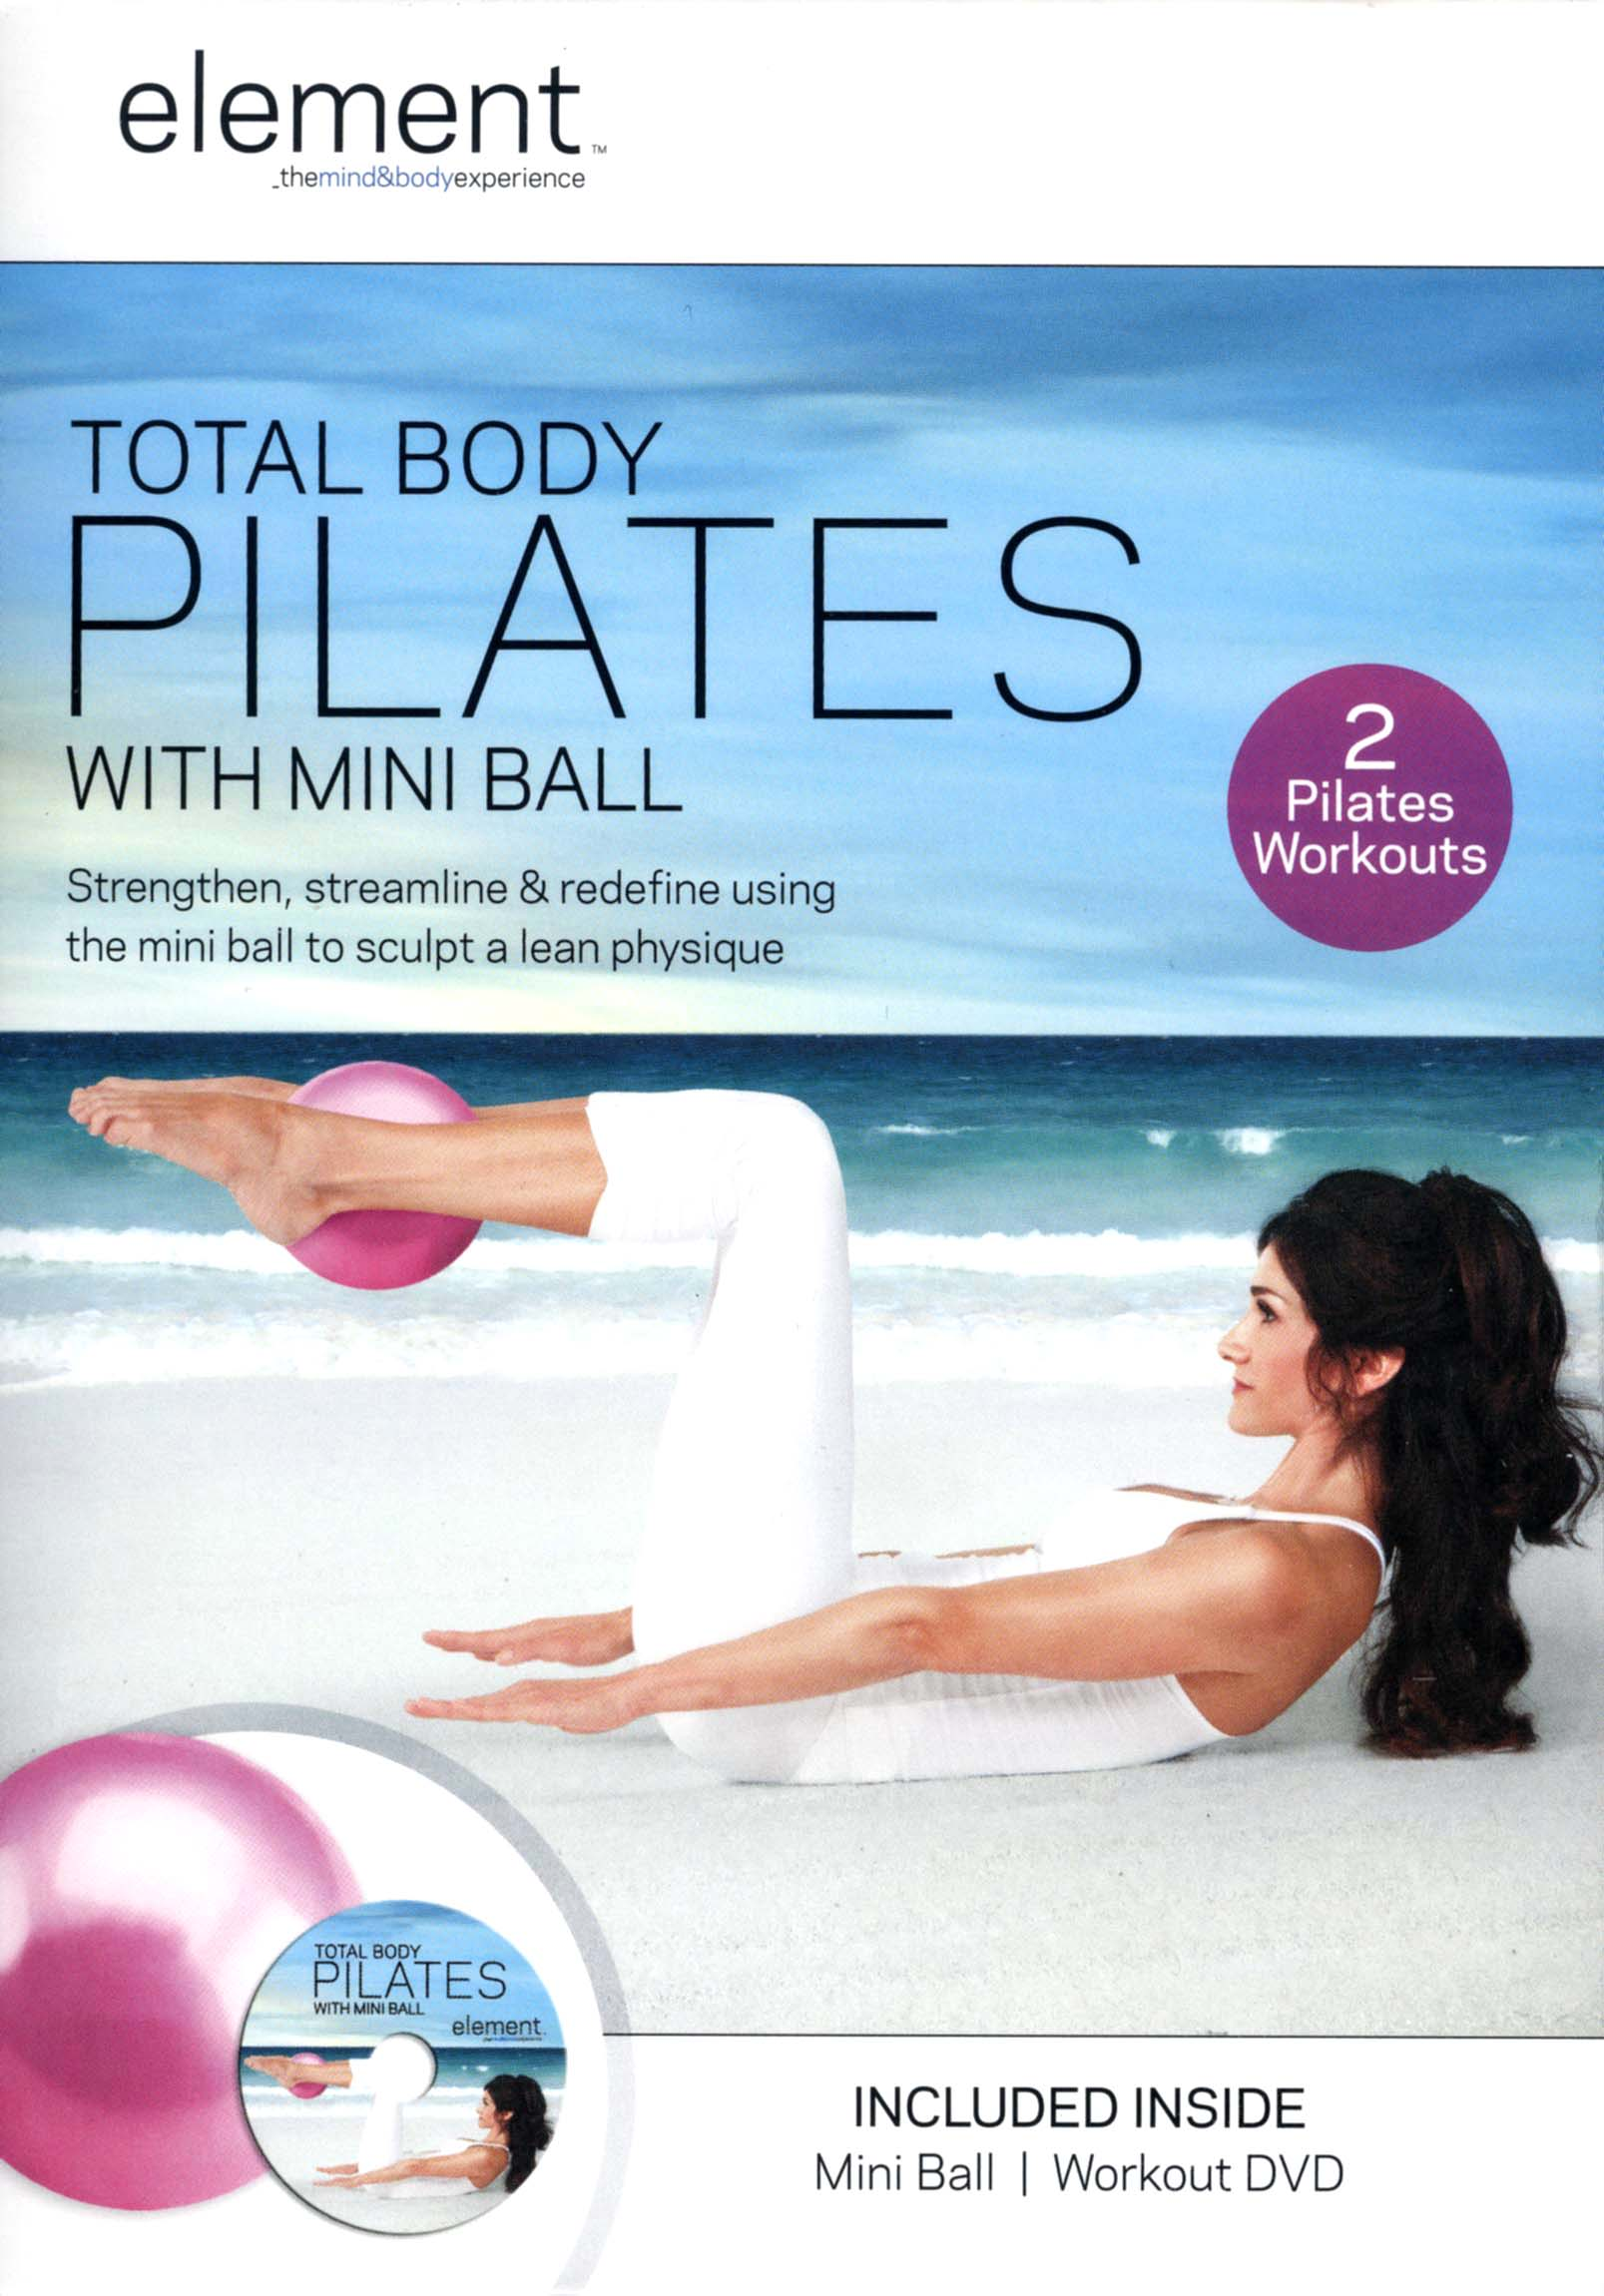 Element: Total Body Pilates